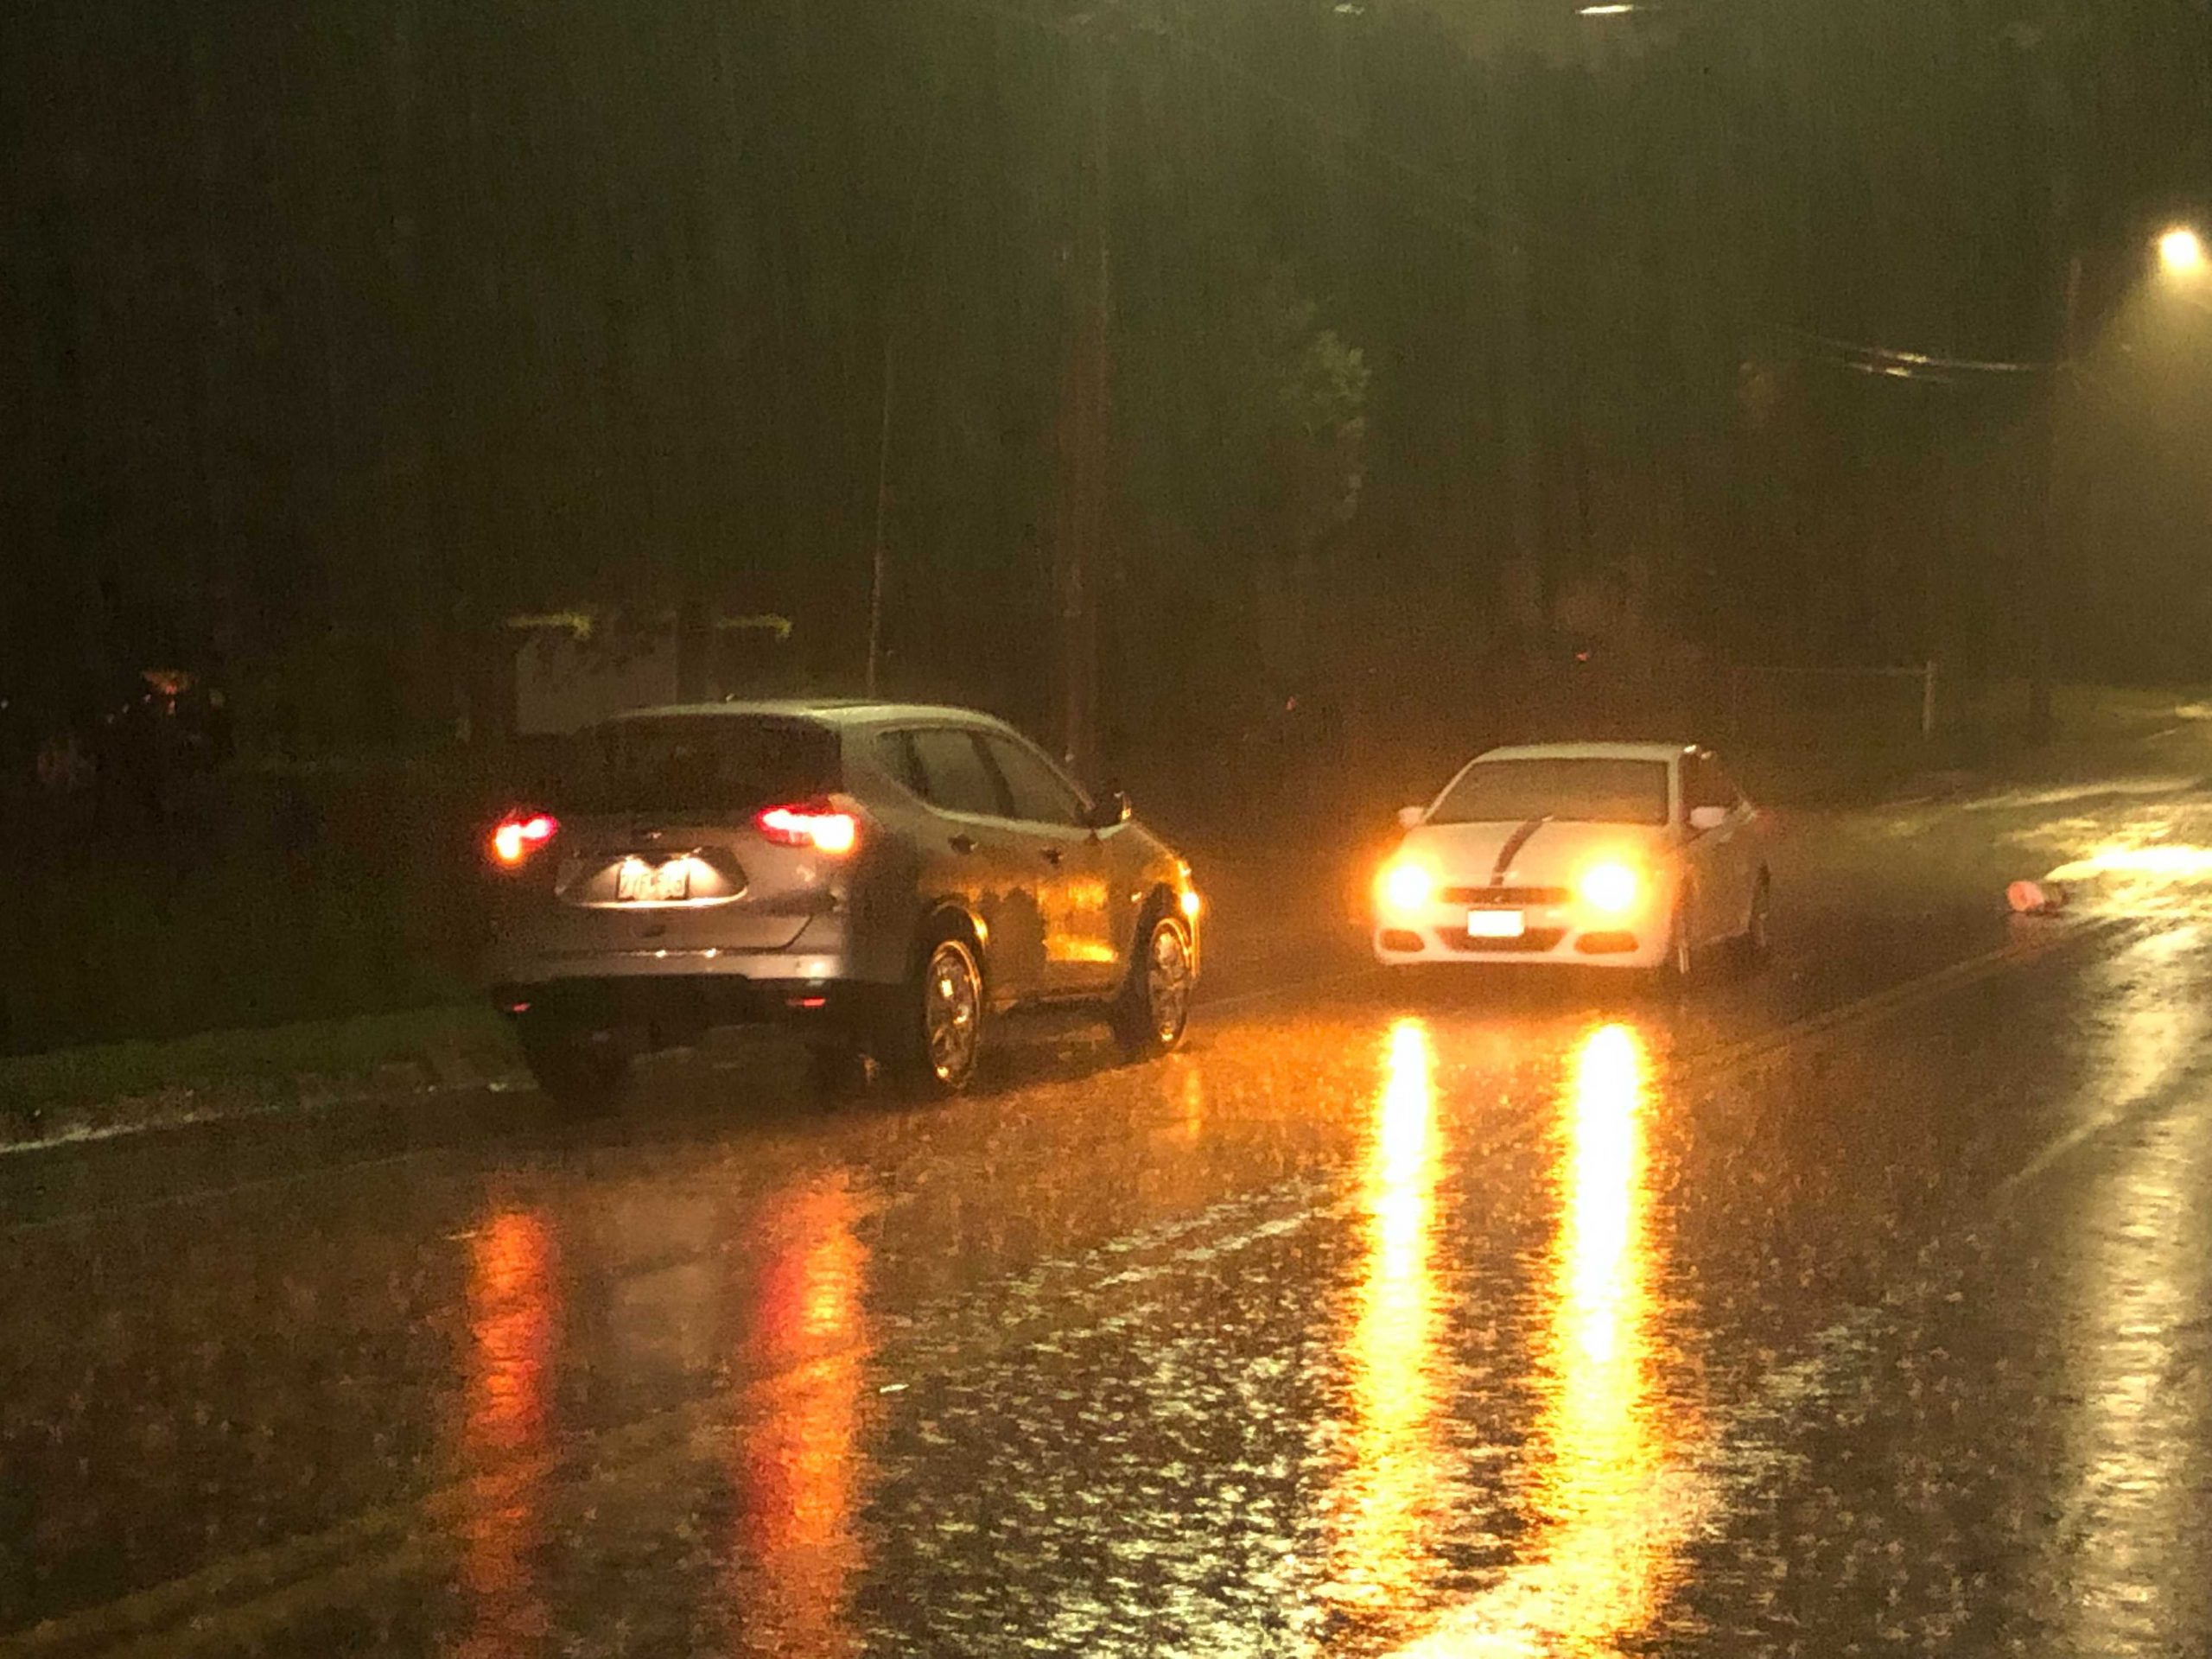 Vehicles stopped in heavy rains in Columbia.